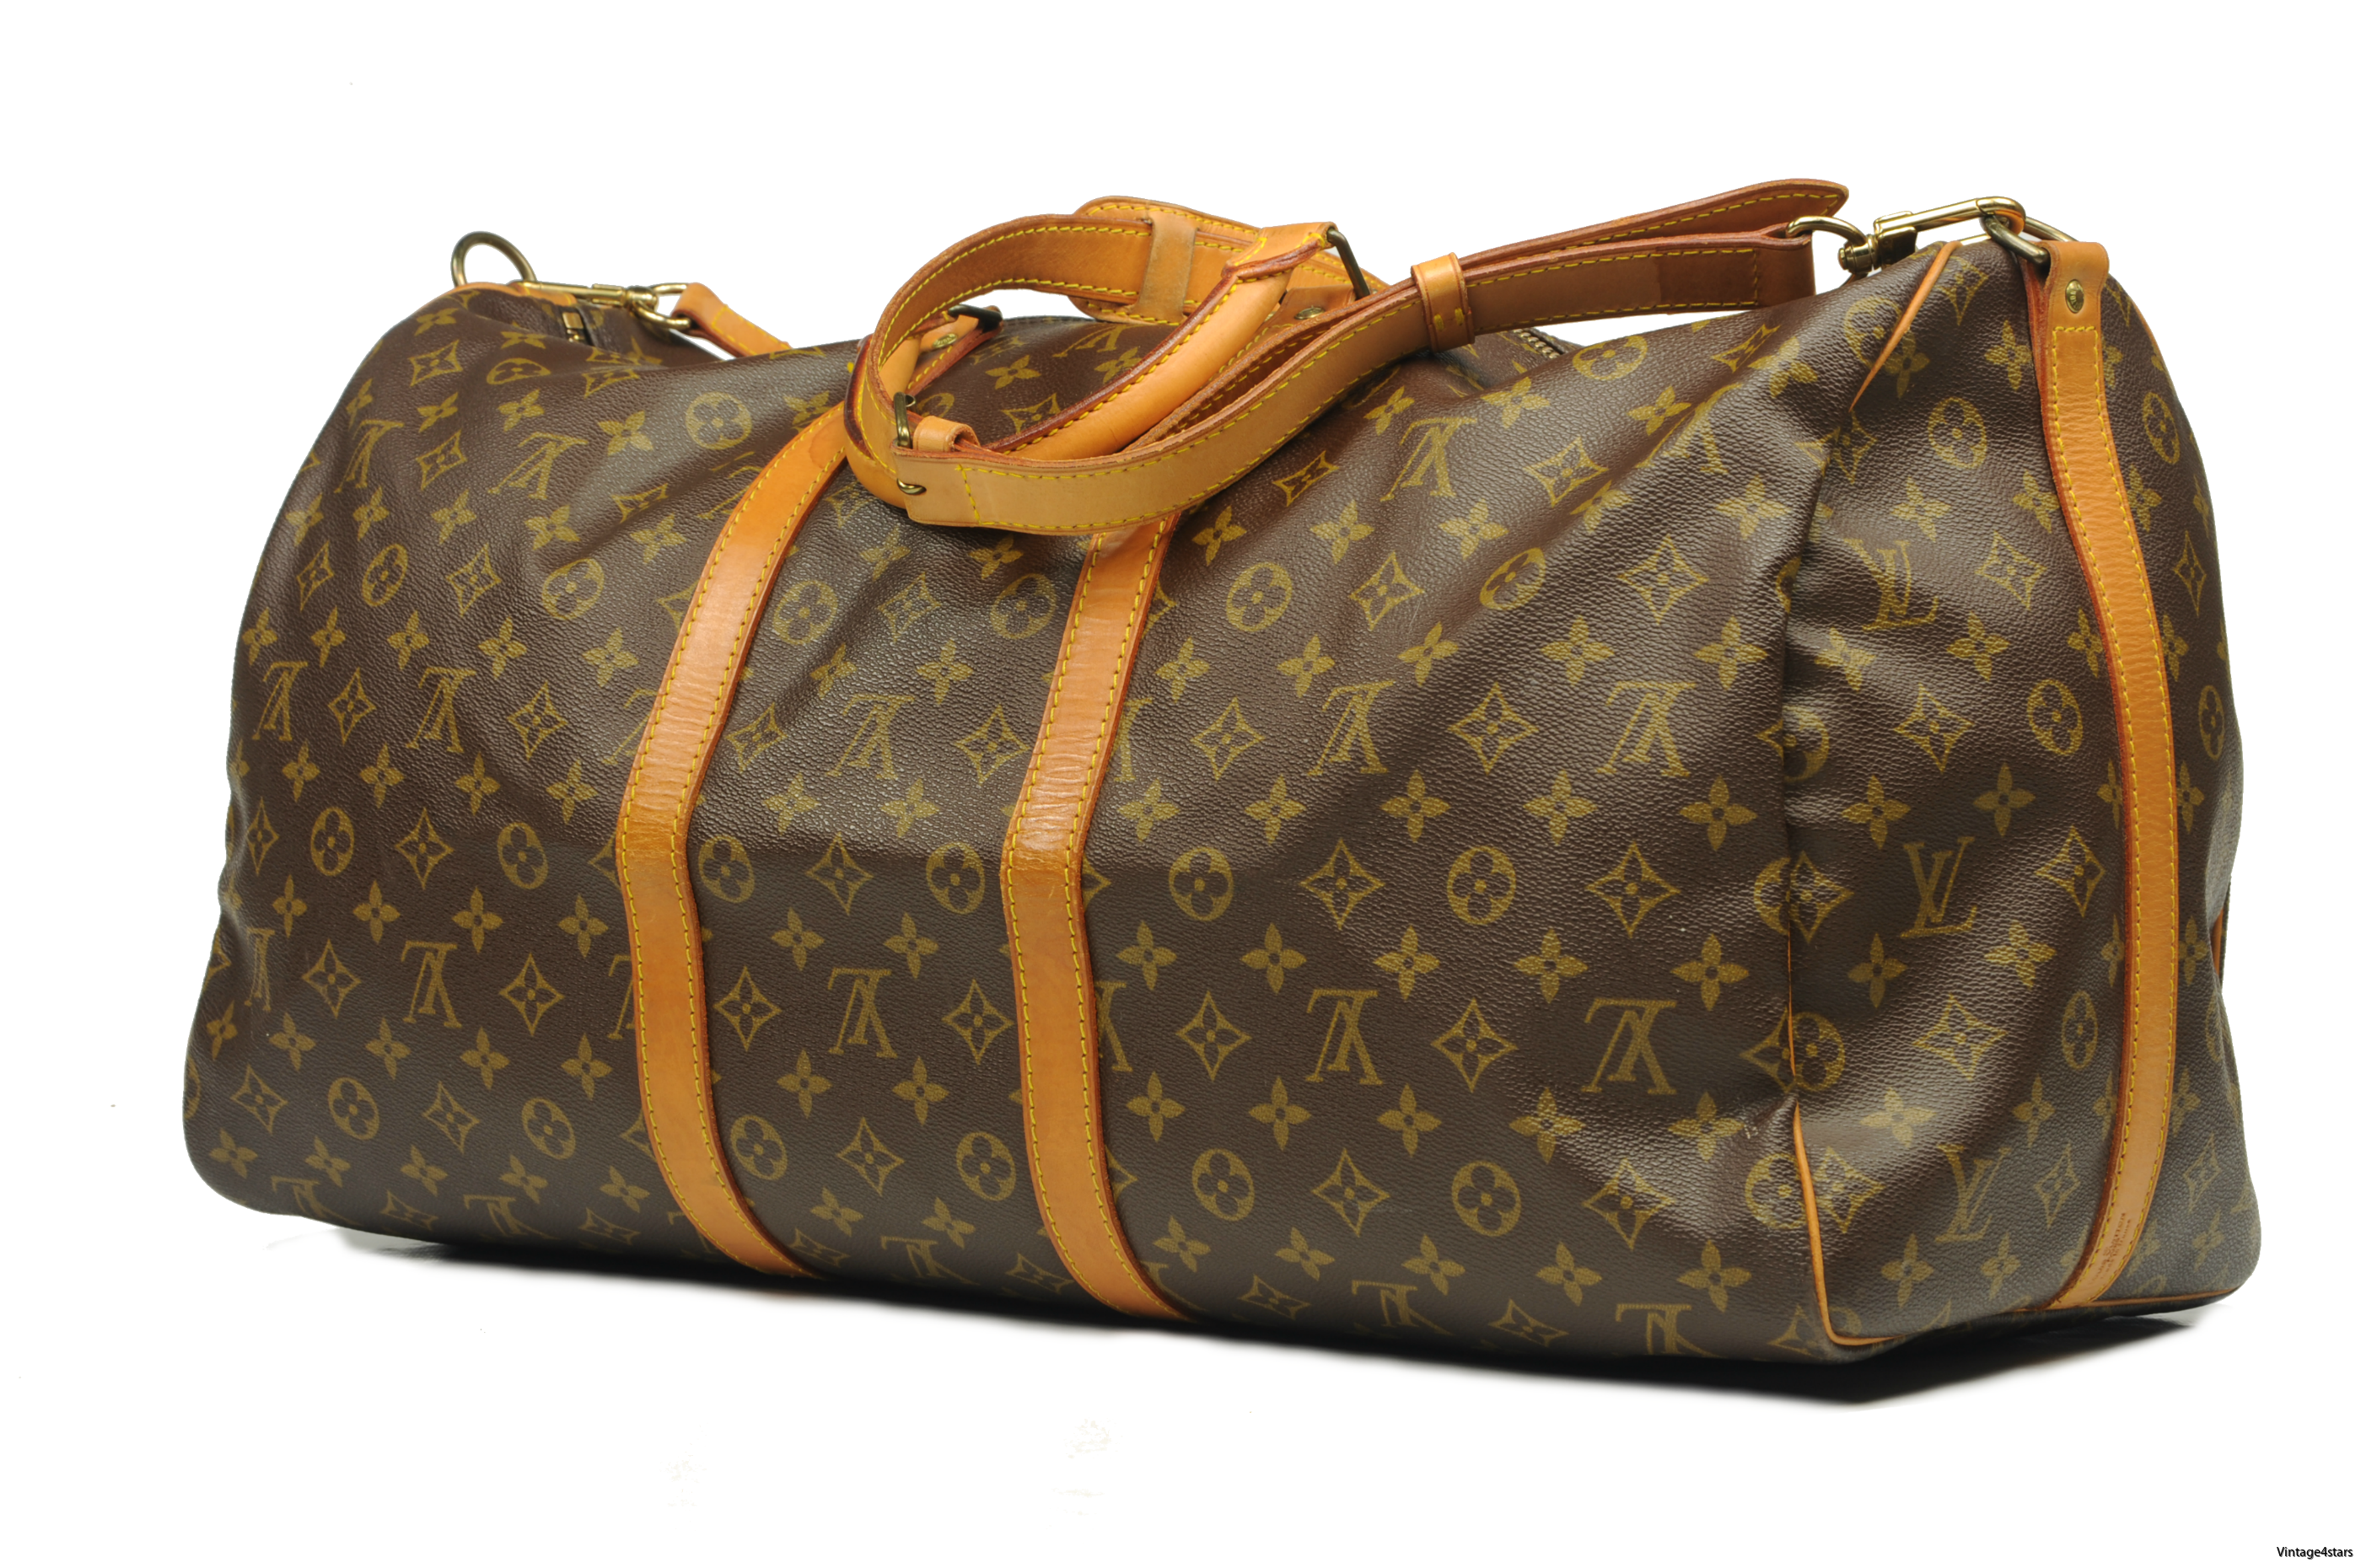 Louis Vuitton Keepall 55 Bandouliere 200